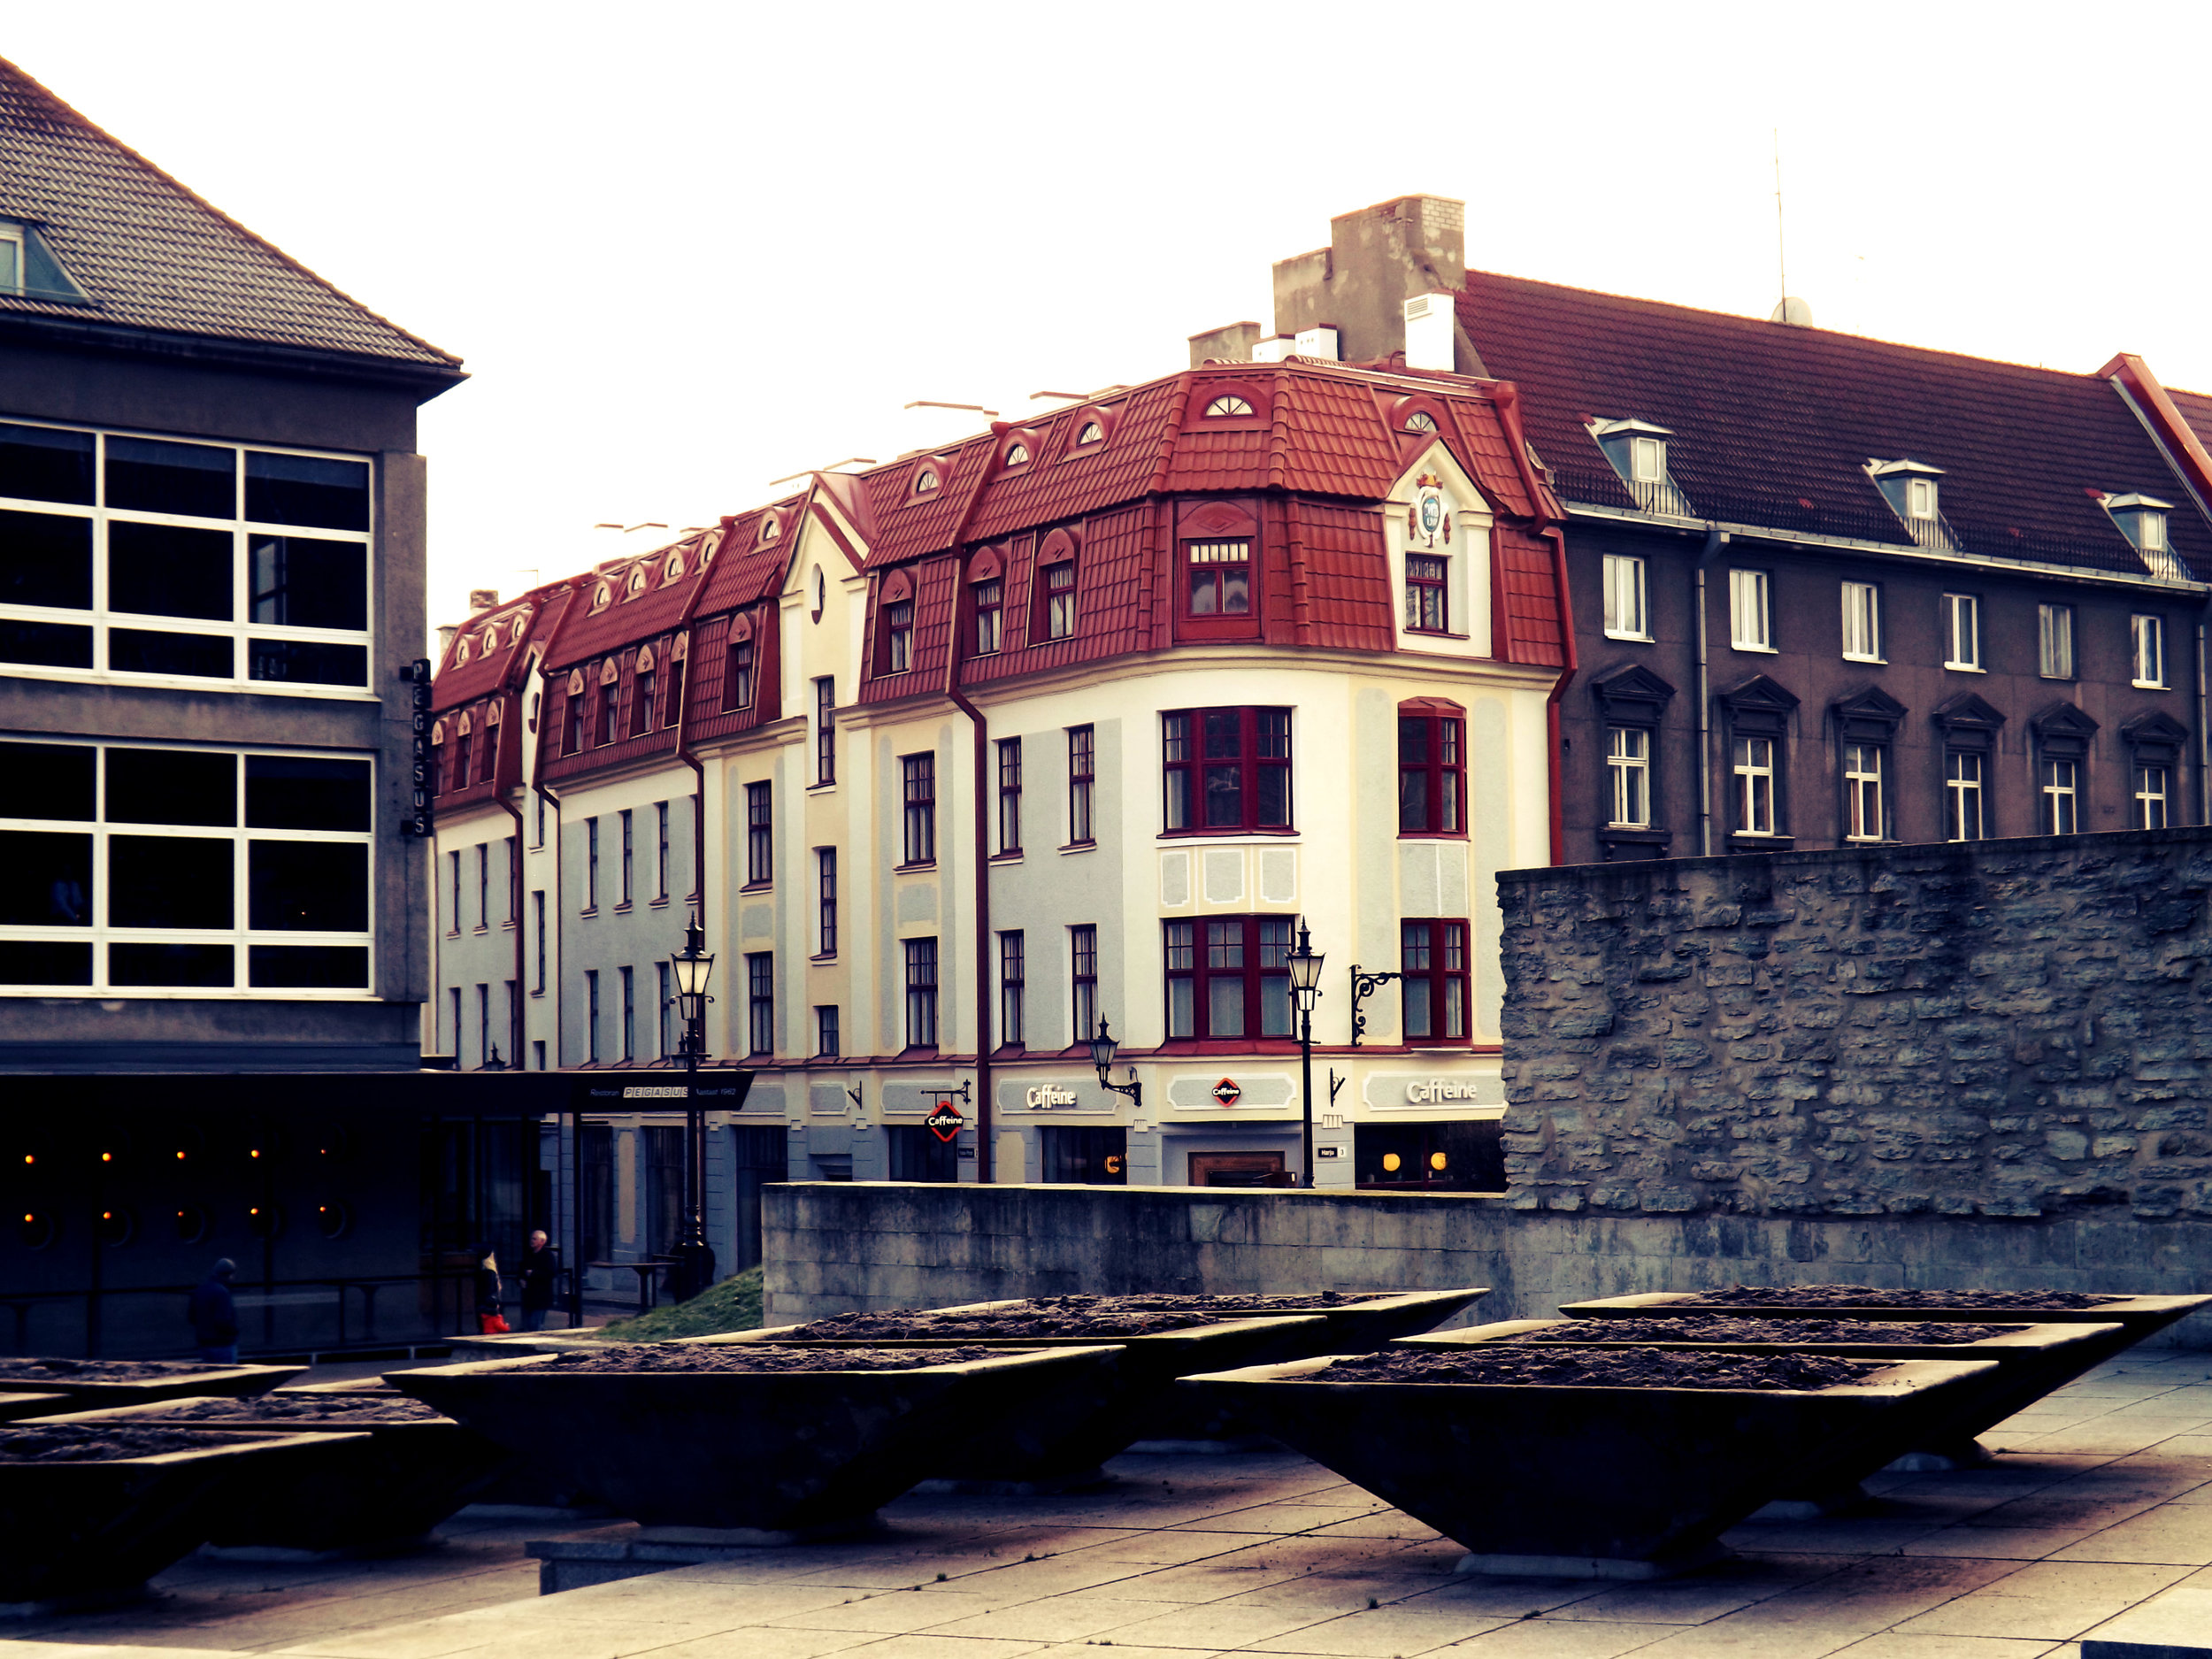 Red Roof Buildings in Estonia | Tall Girl Meets World